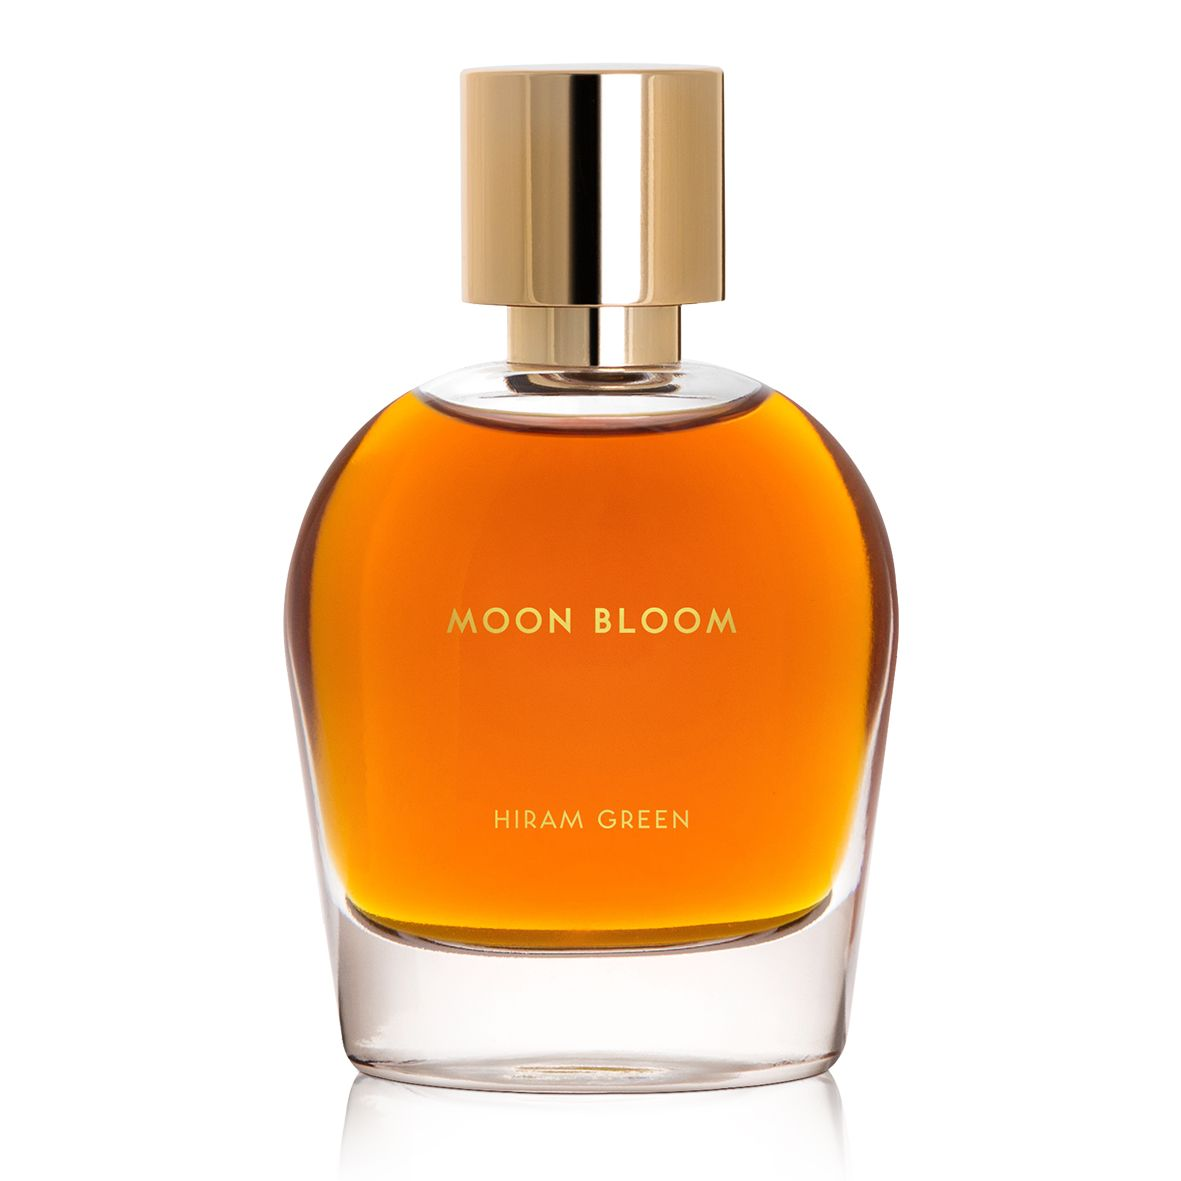 hiram green moon bloom edp 50ml. Black Bedroom Furniture Sets. Home Design Ideas